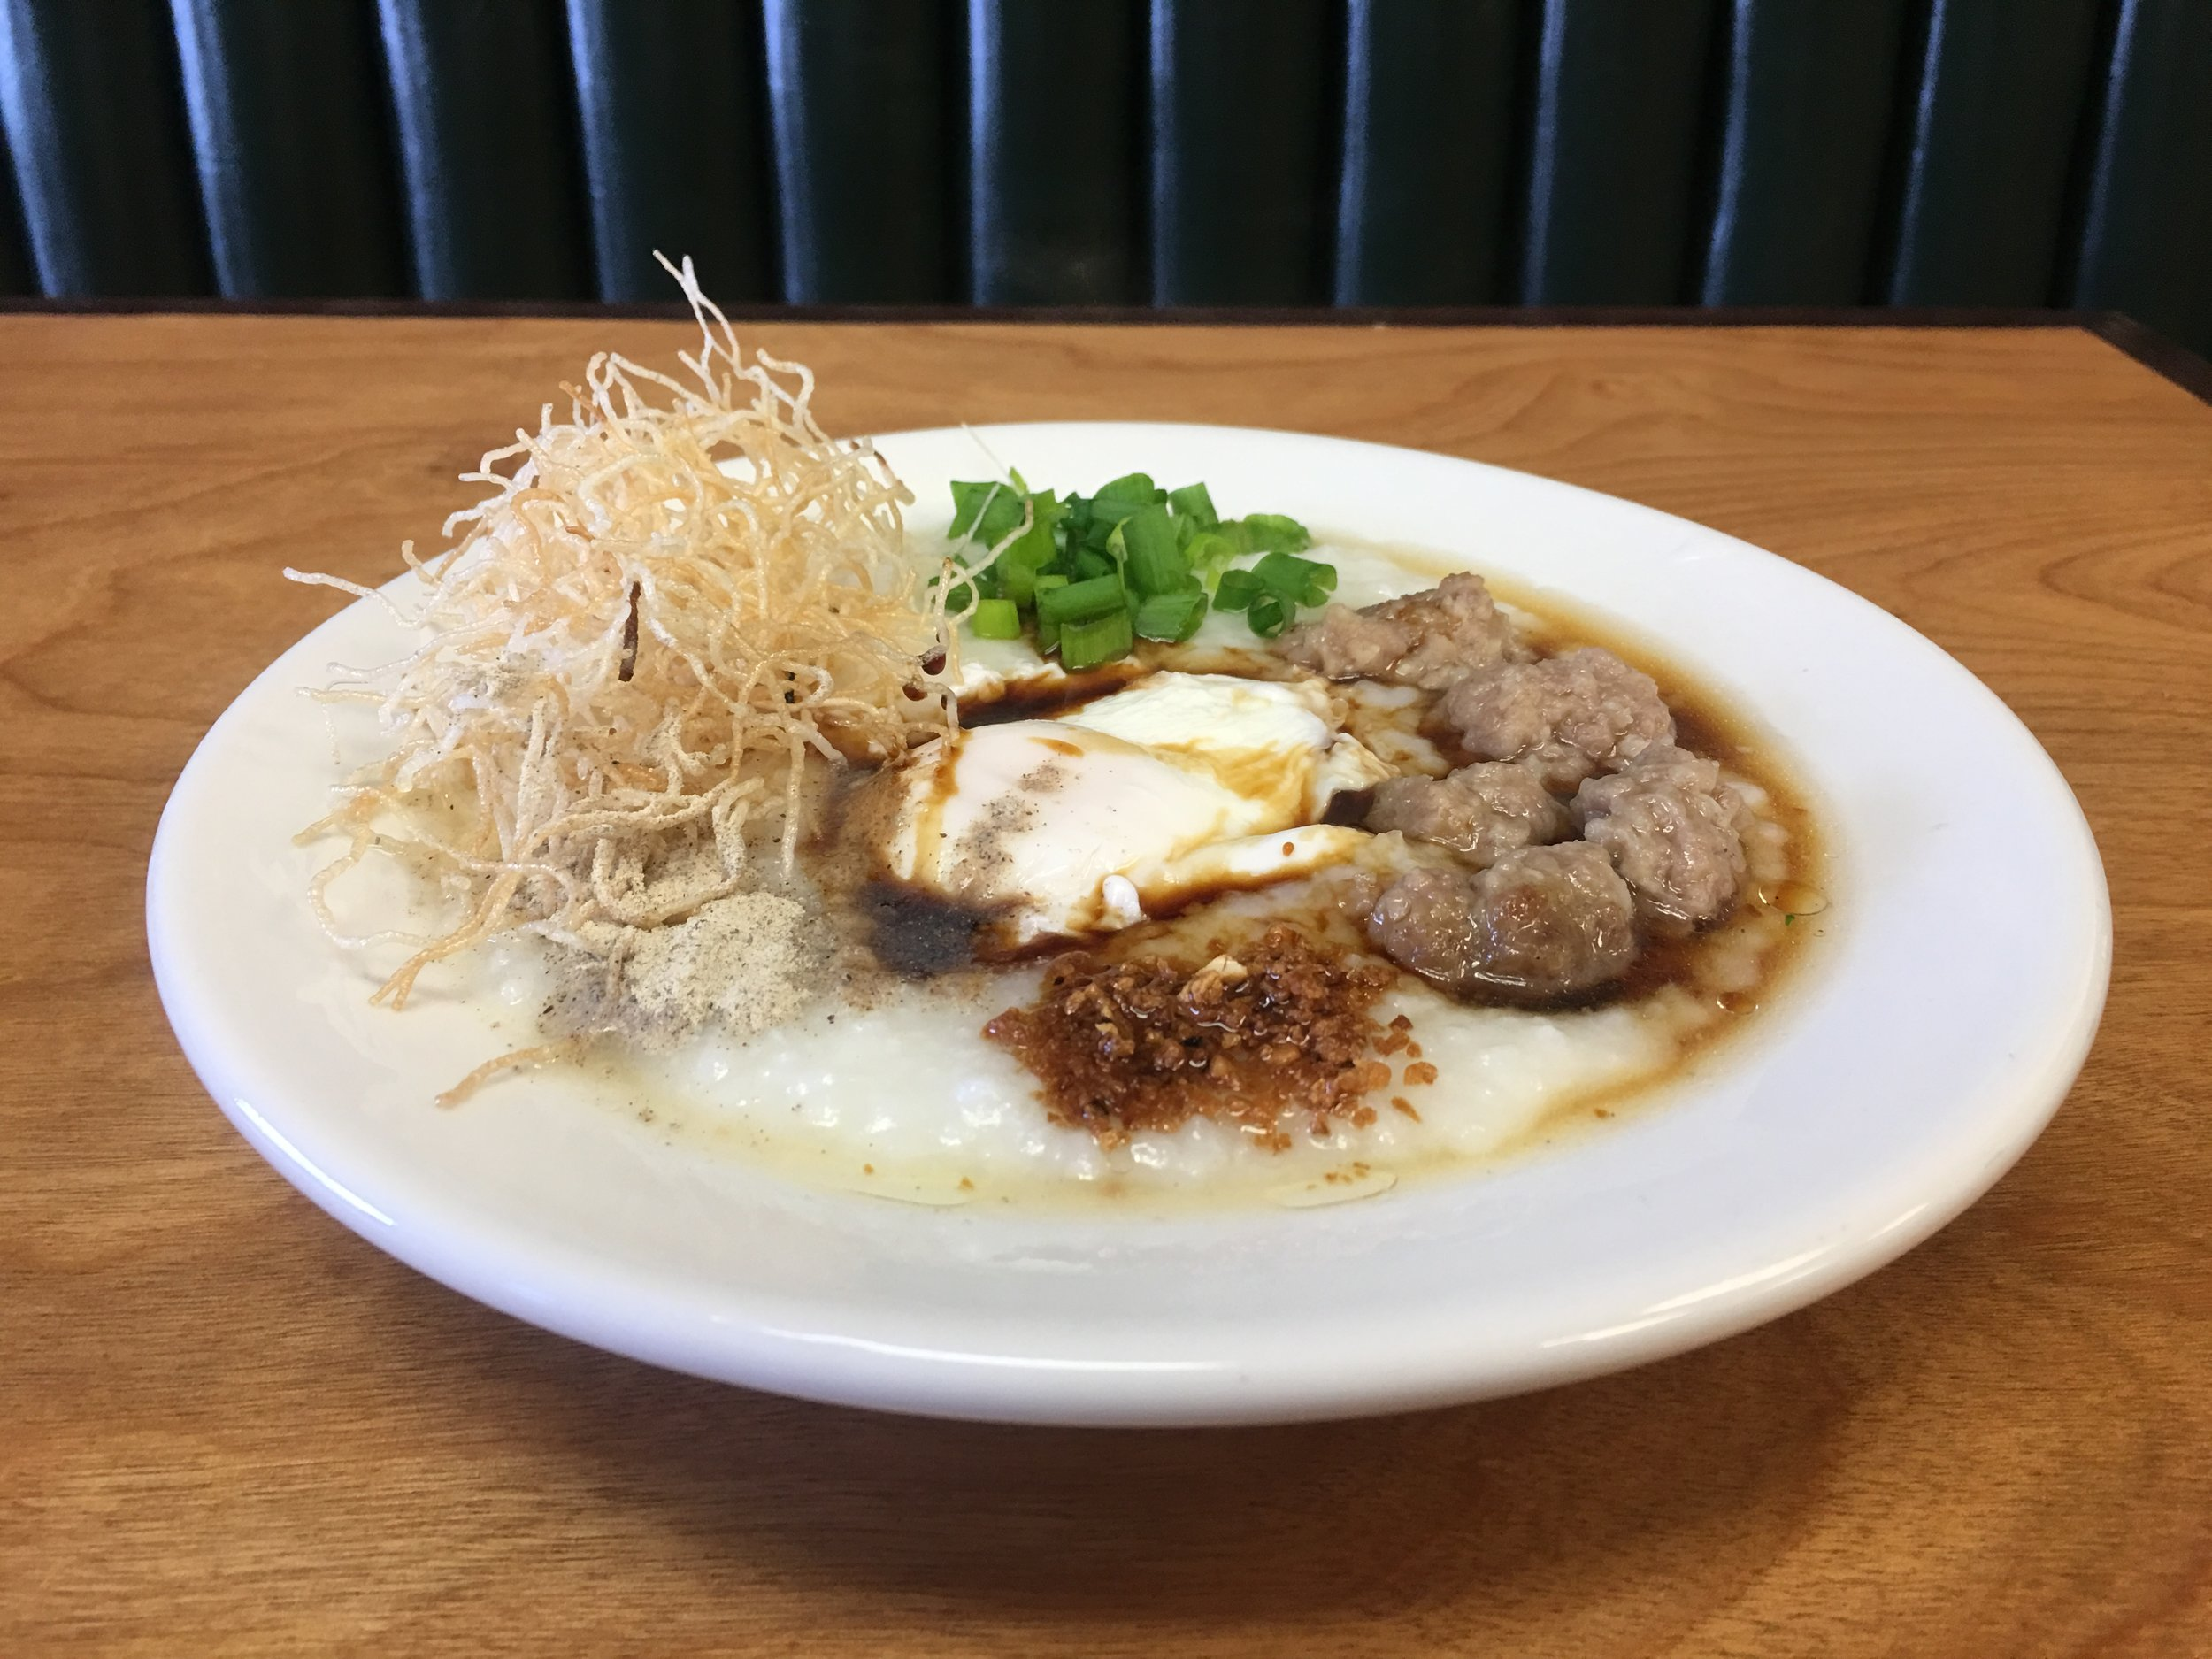 Johk - Congee / rice porridge. Pictured here Bon Palay style with crispy rice noodles, scallion, a poached egg and moo deng (marinated ground pork and tapioca)